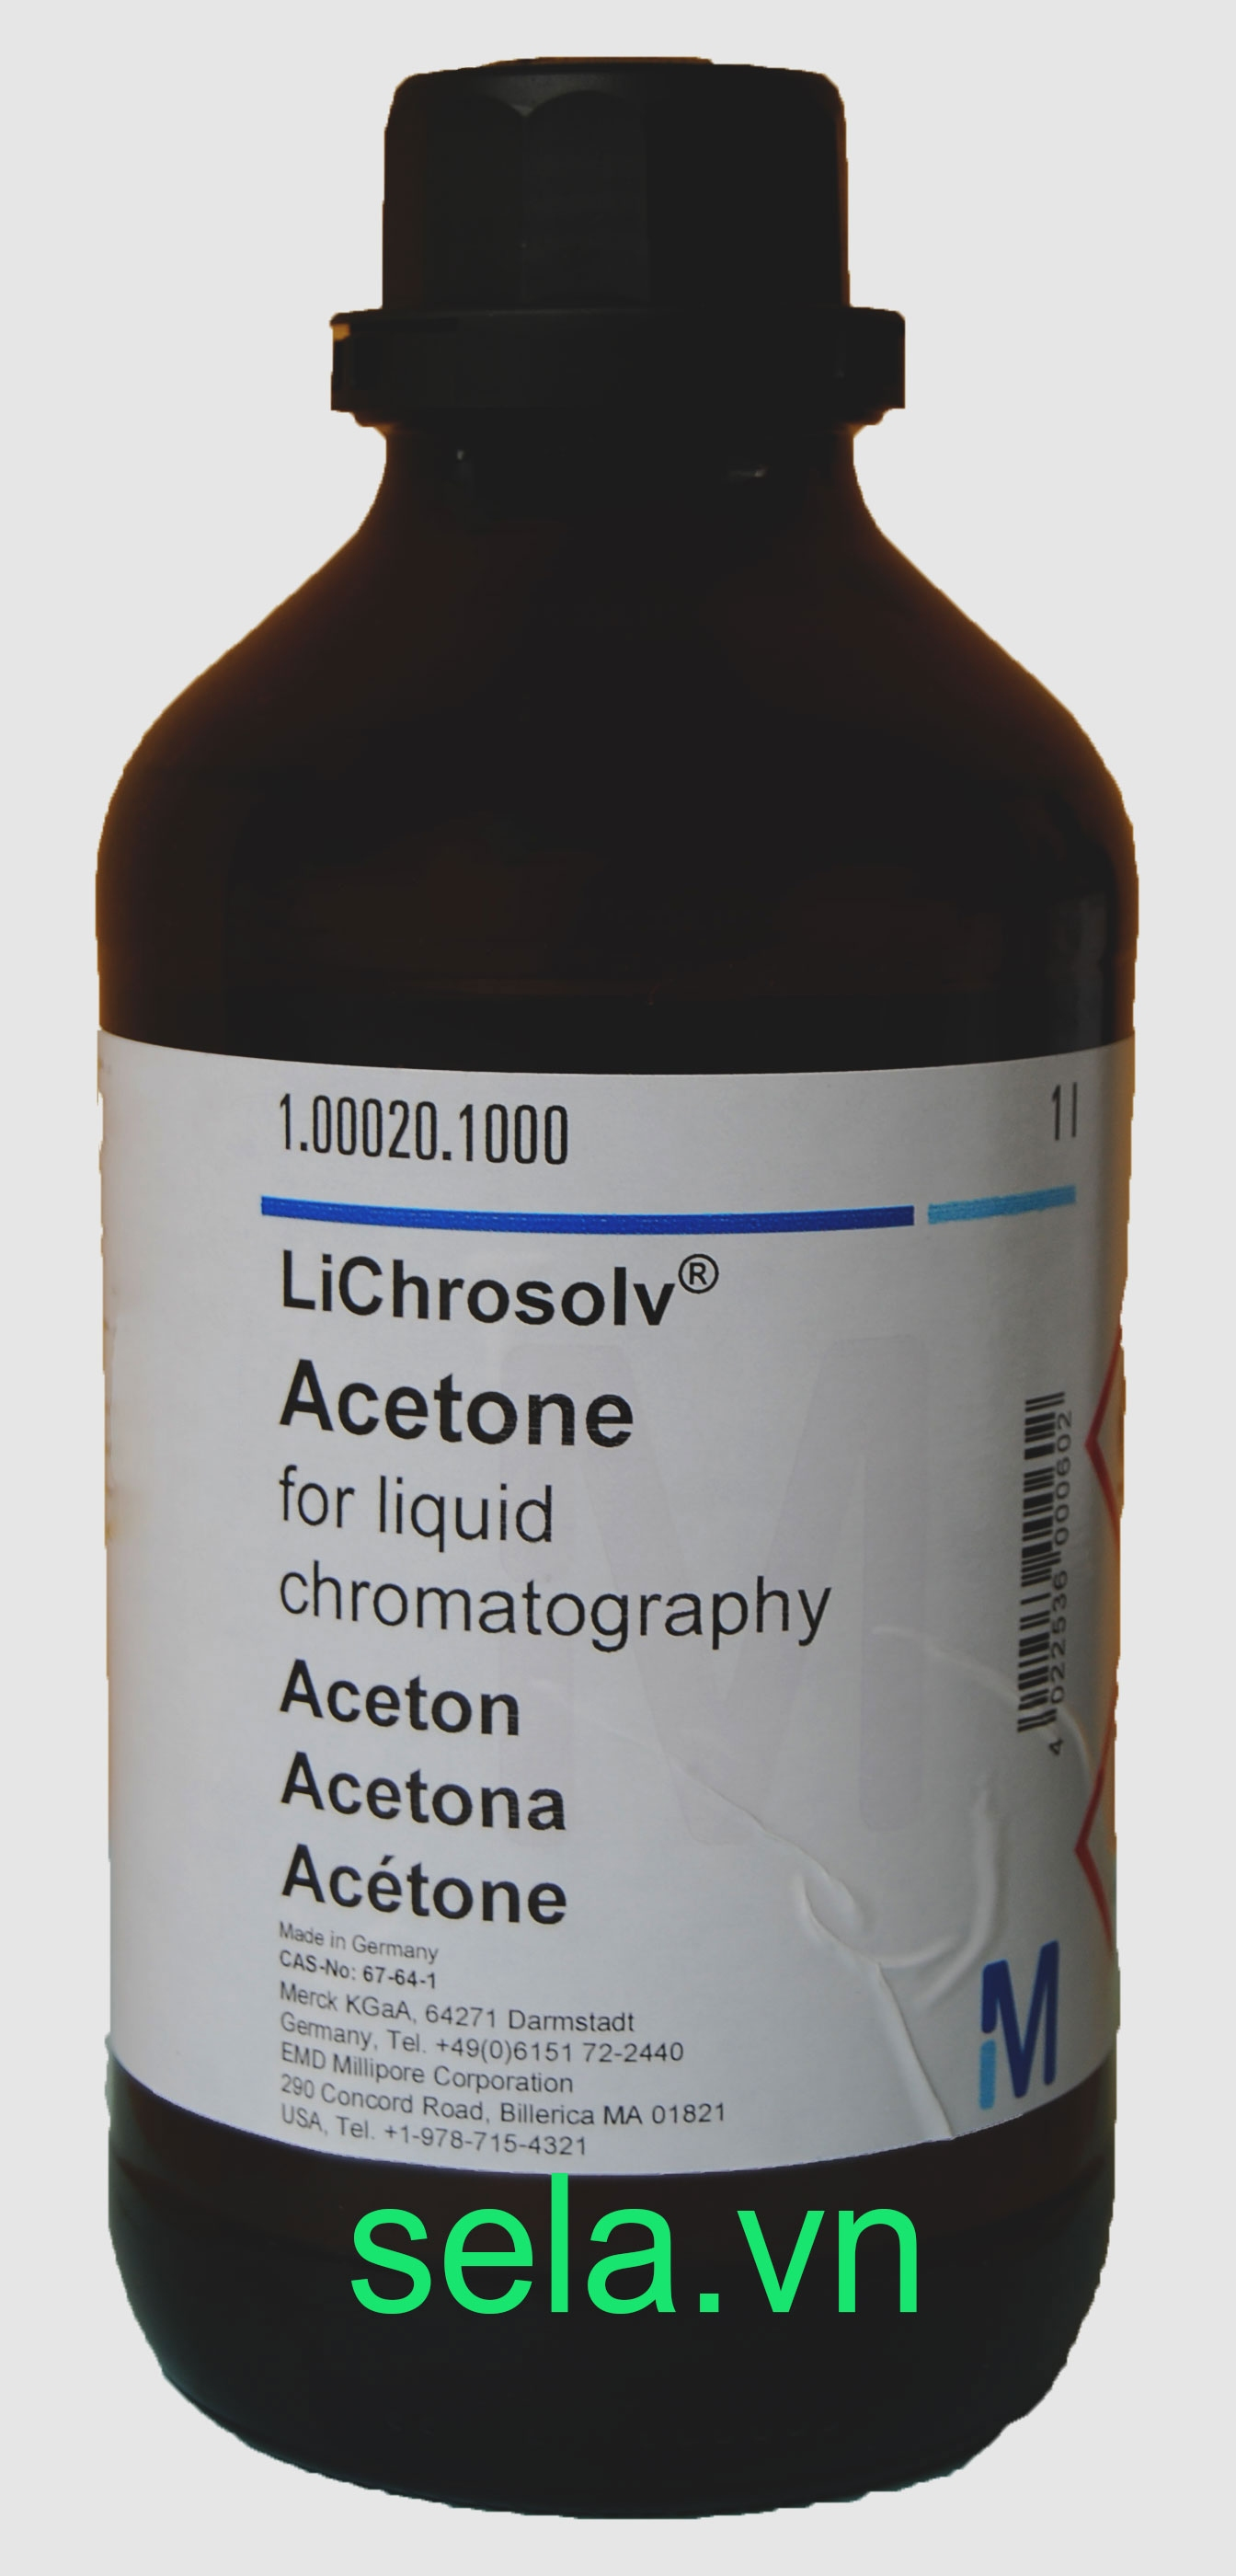 Acetone for liquid chromatography LiChrosolv®